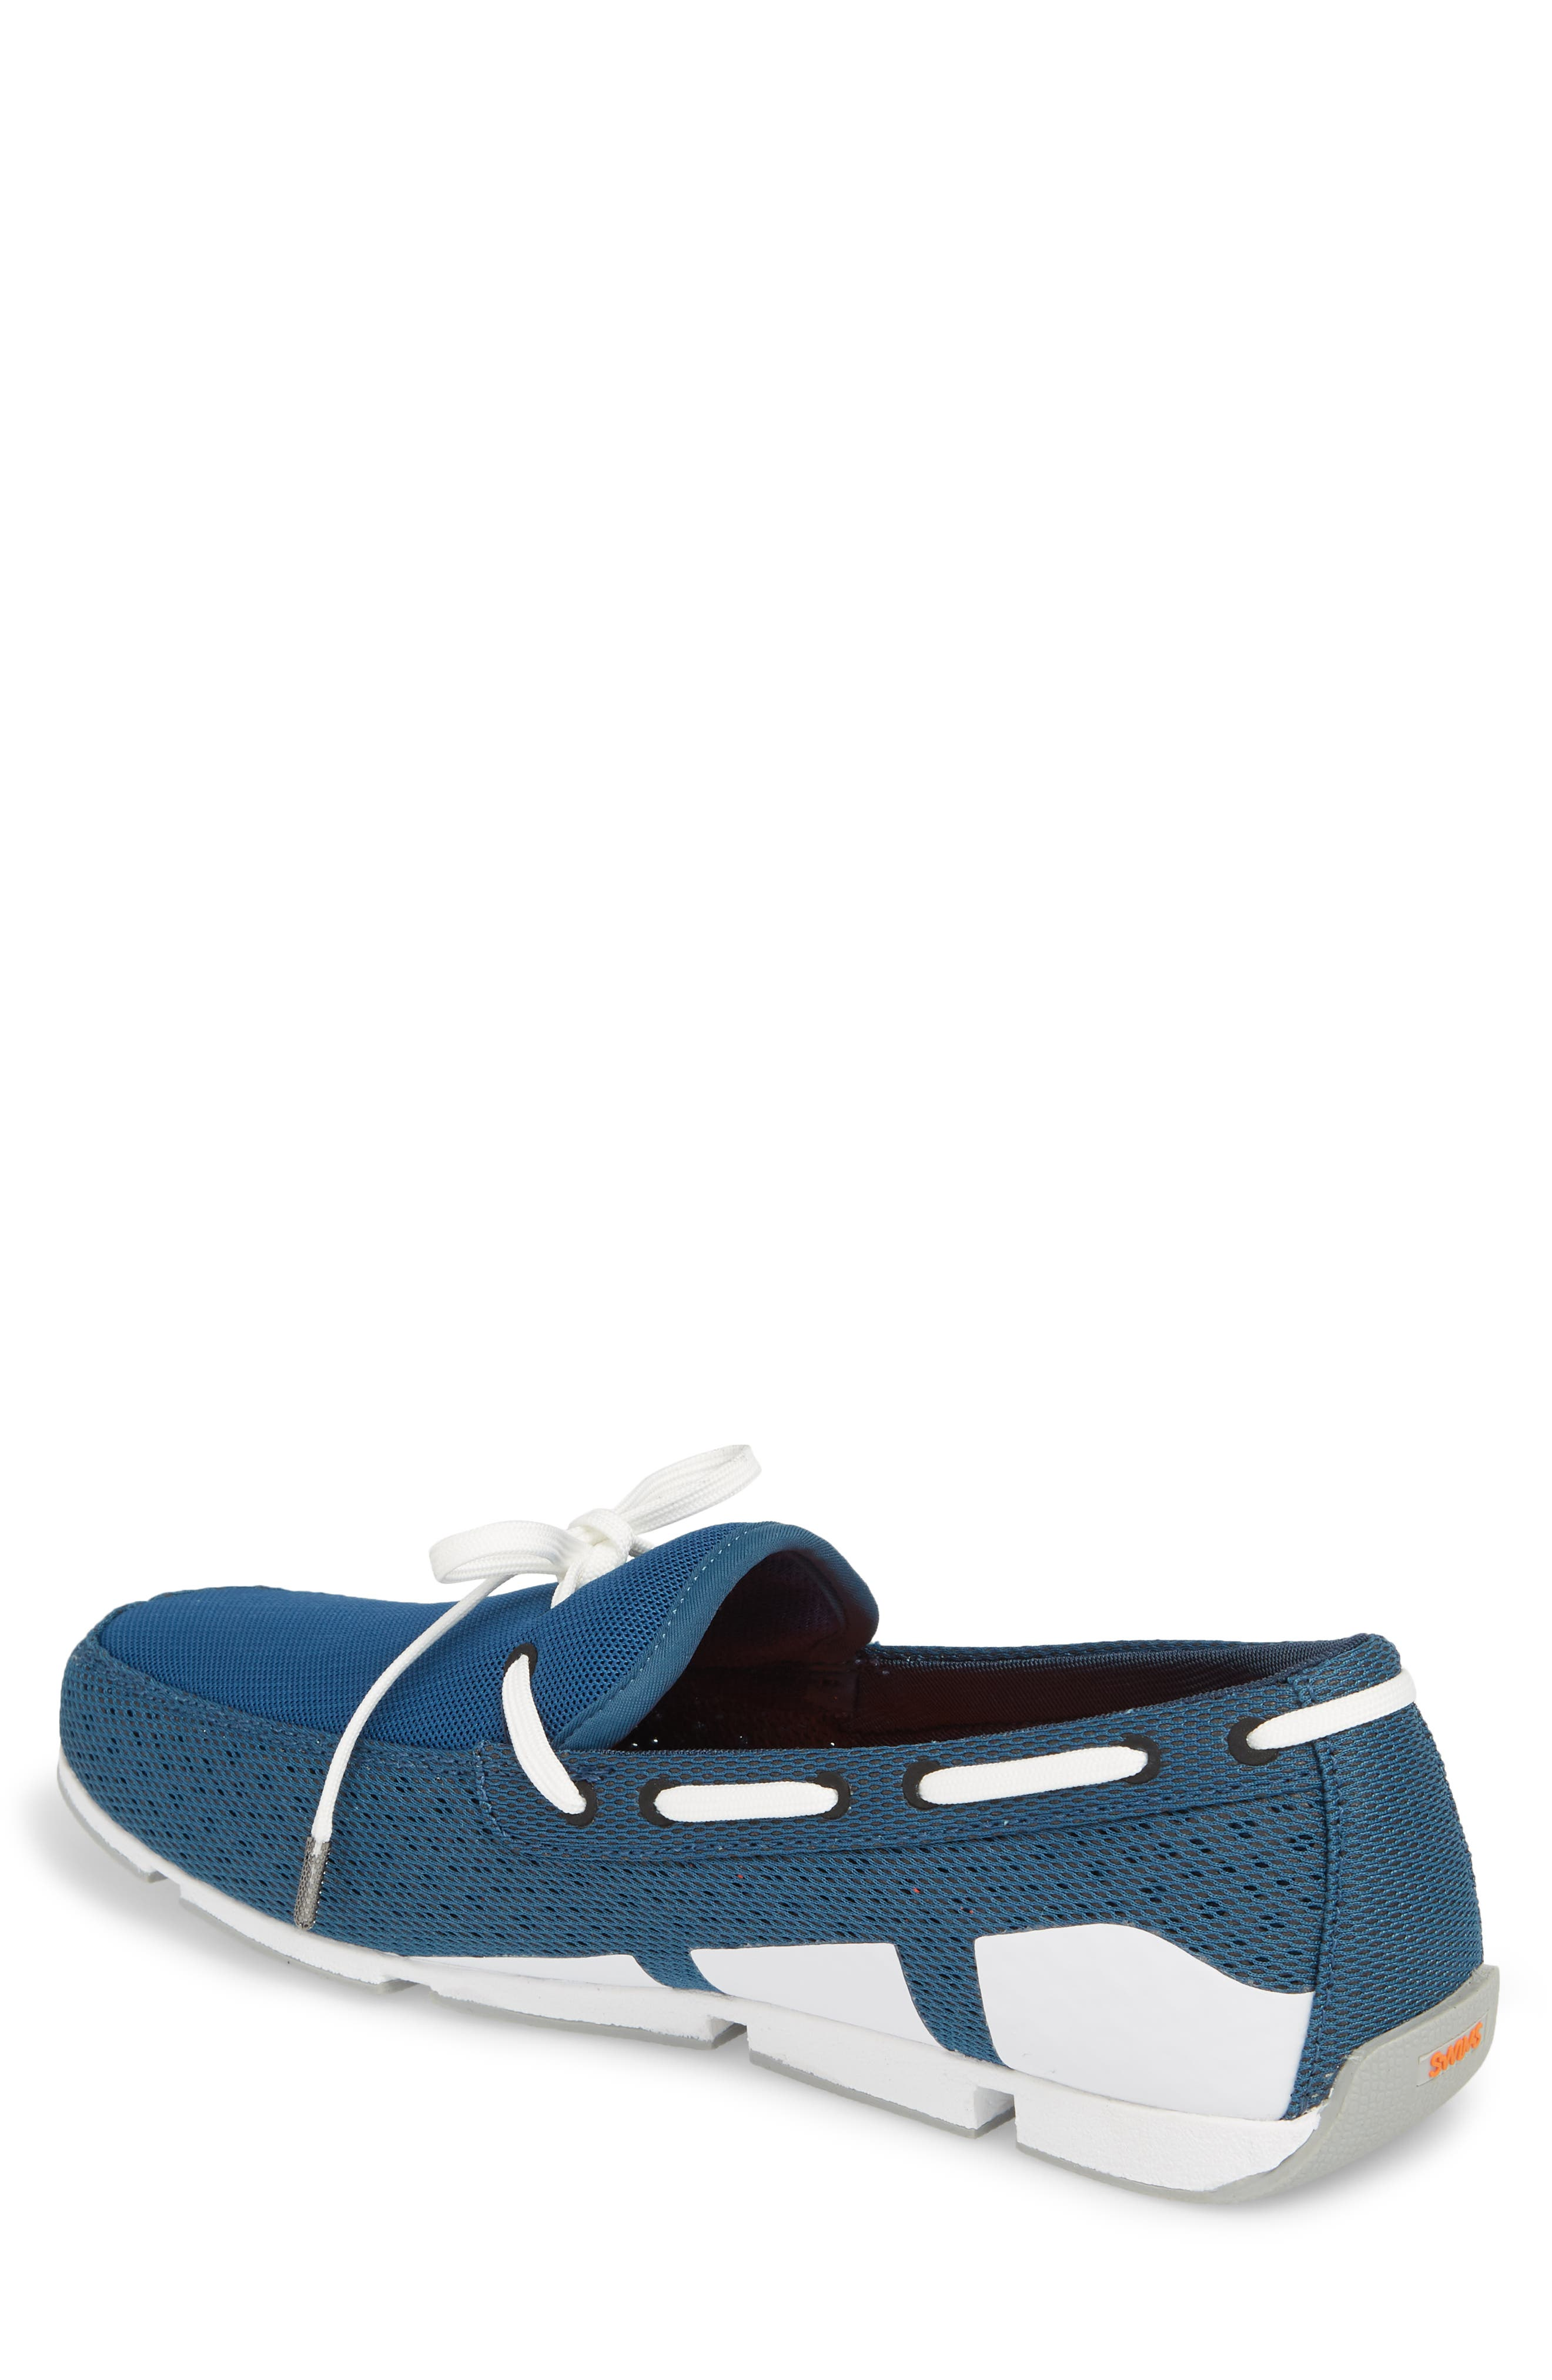 Breeze Loafer,                             Alternate thumbnail 2, color,                             BLUE/ WHITE